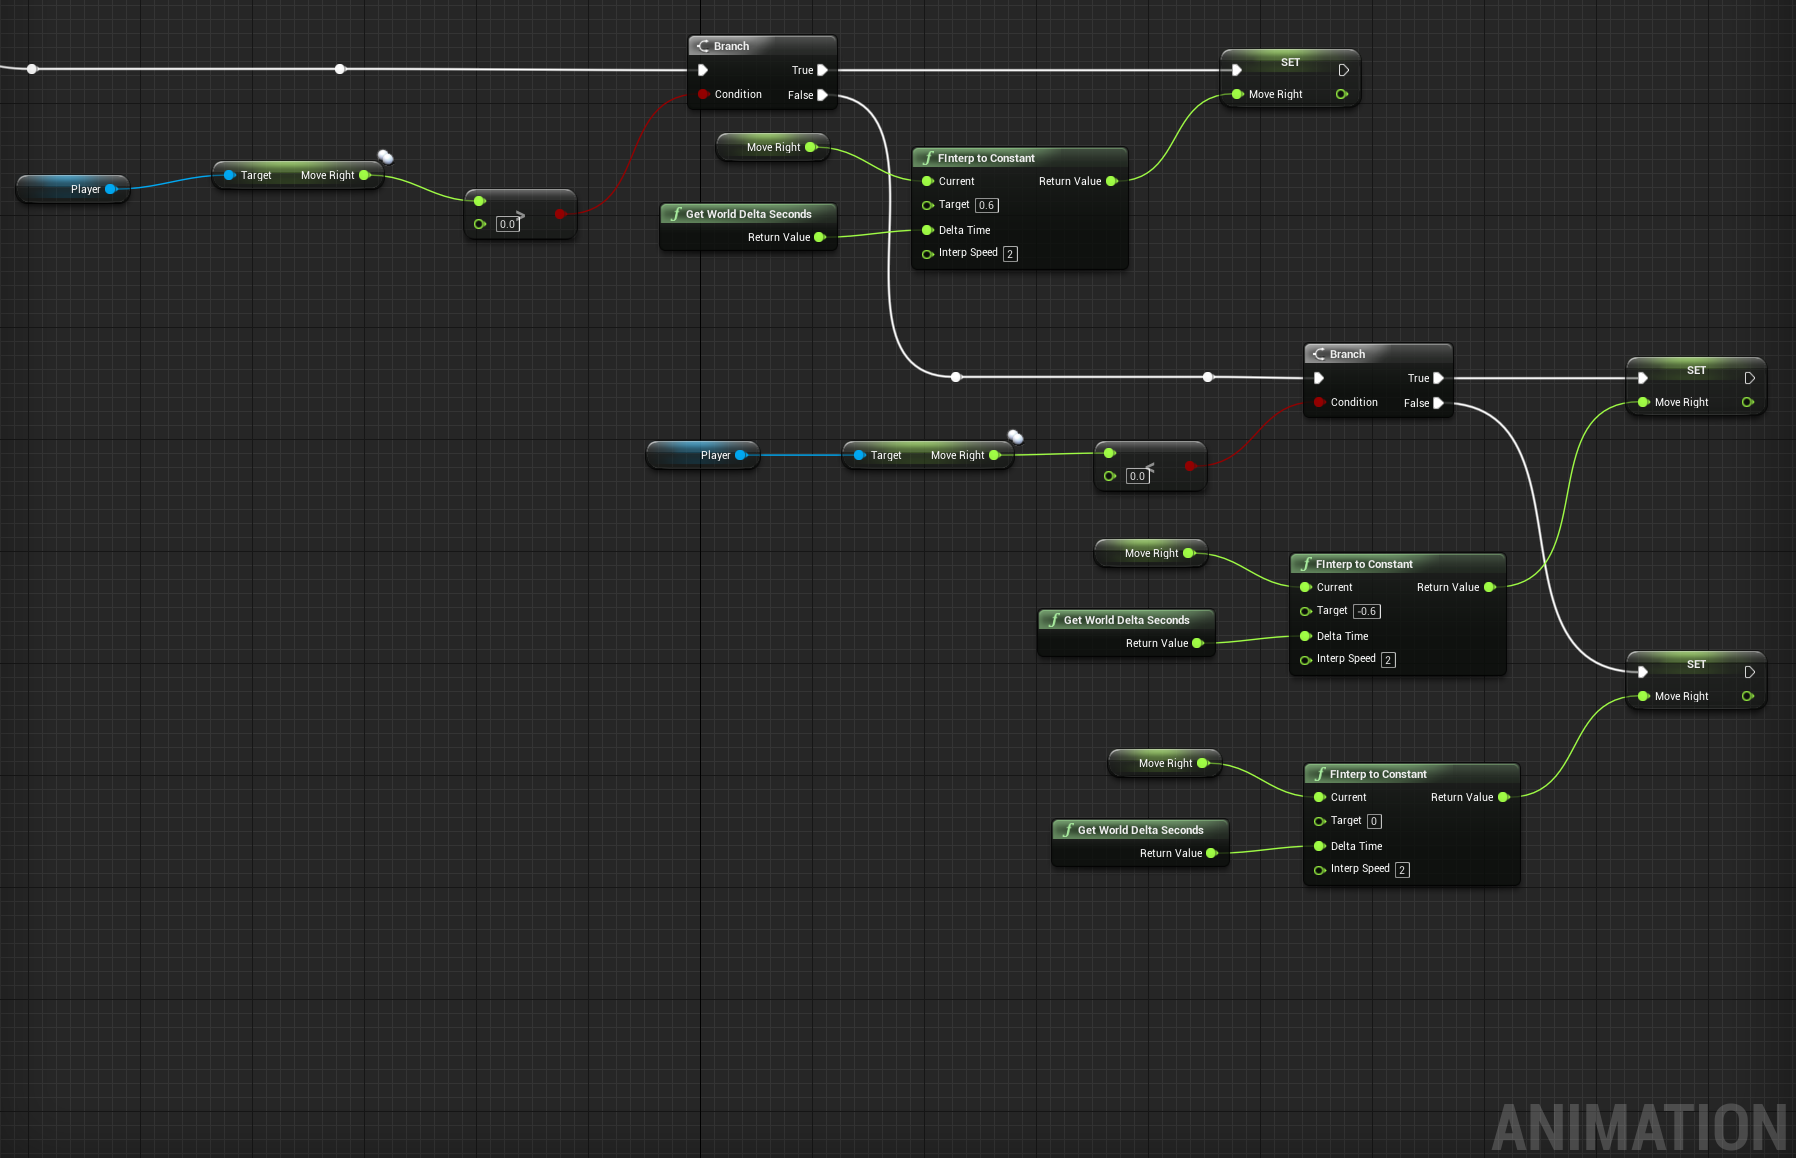 Road Map Of Project%0A Move Right Code MoveRt Code PNG